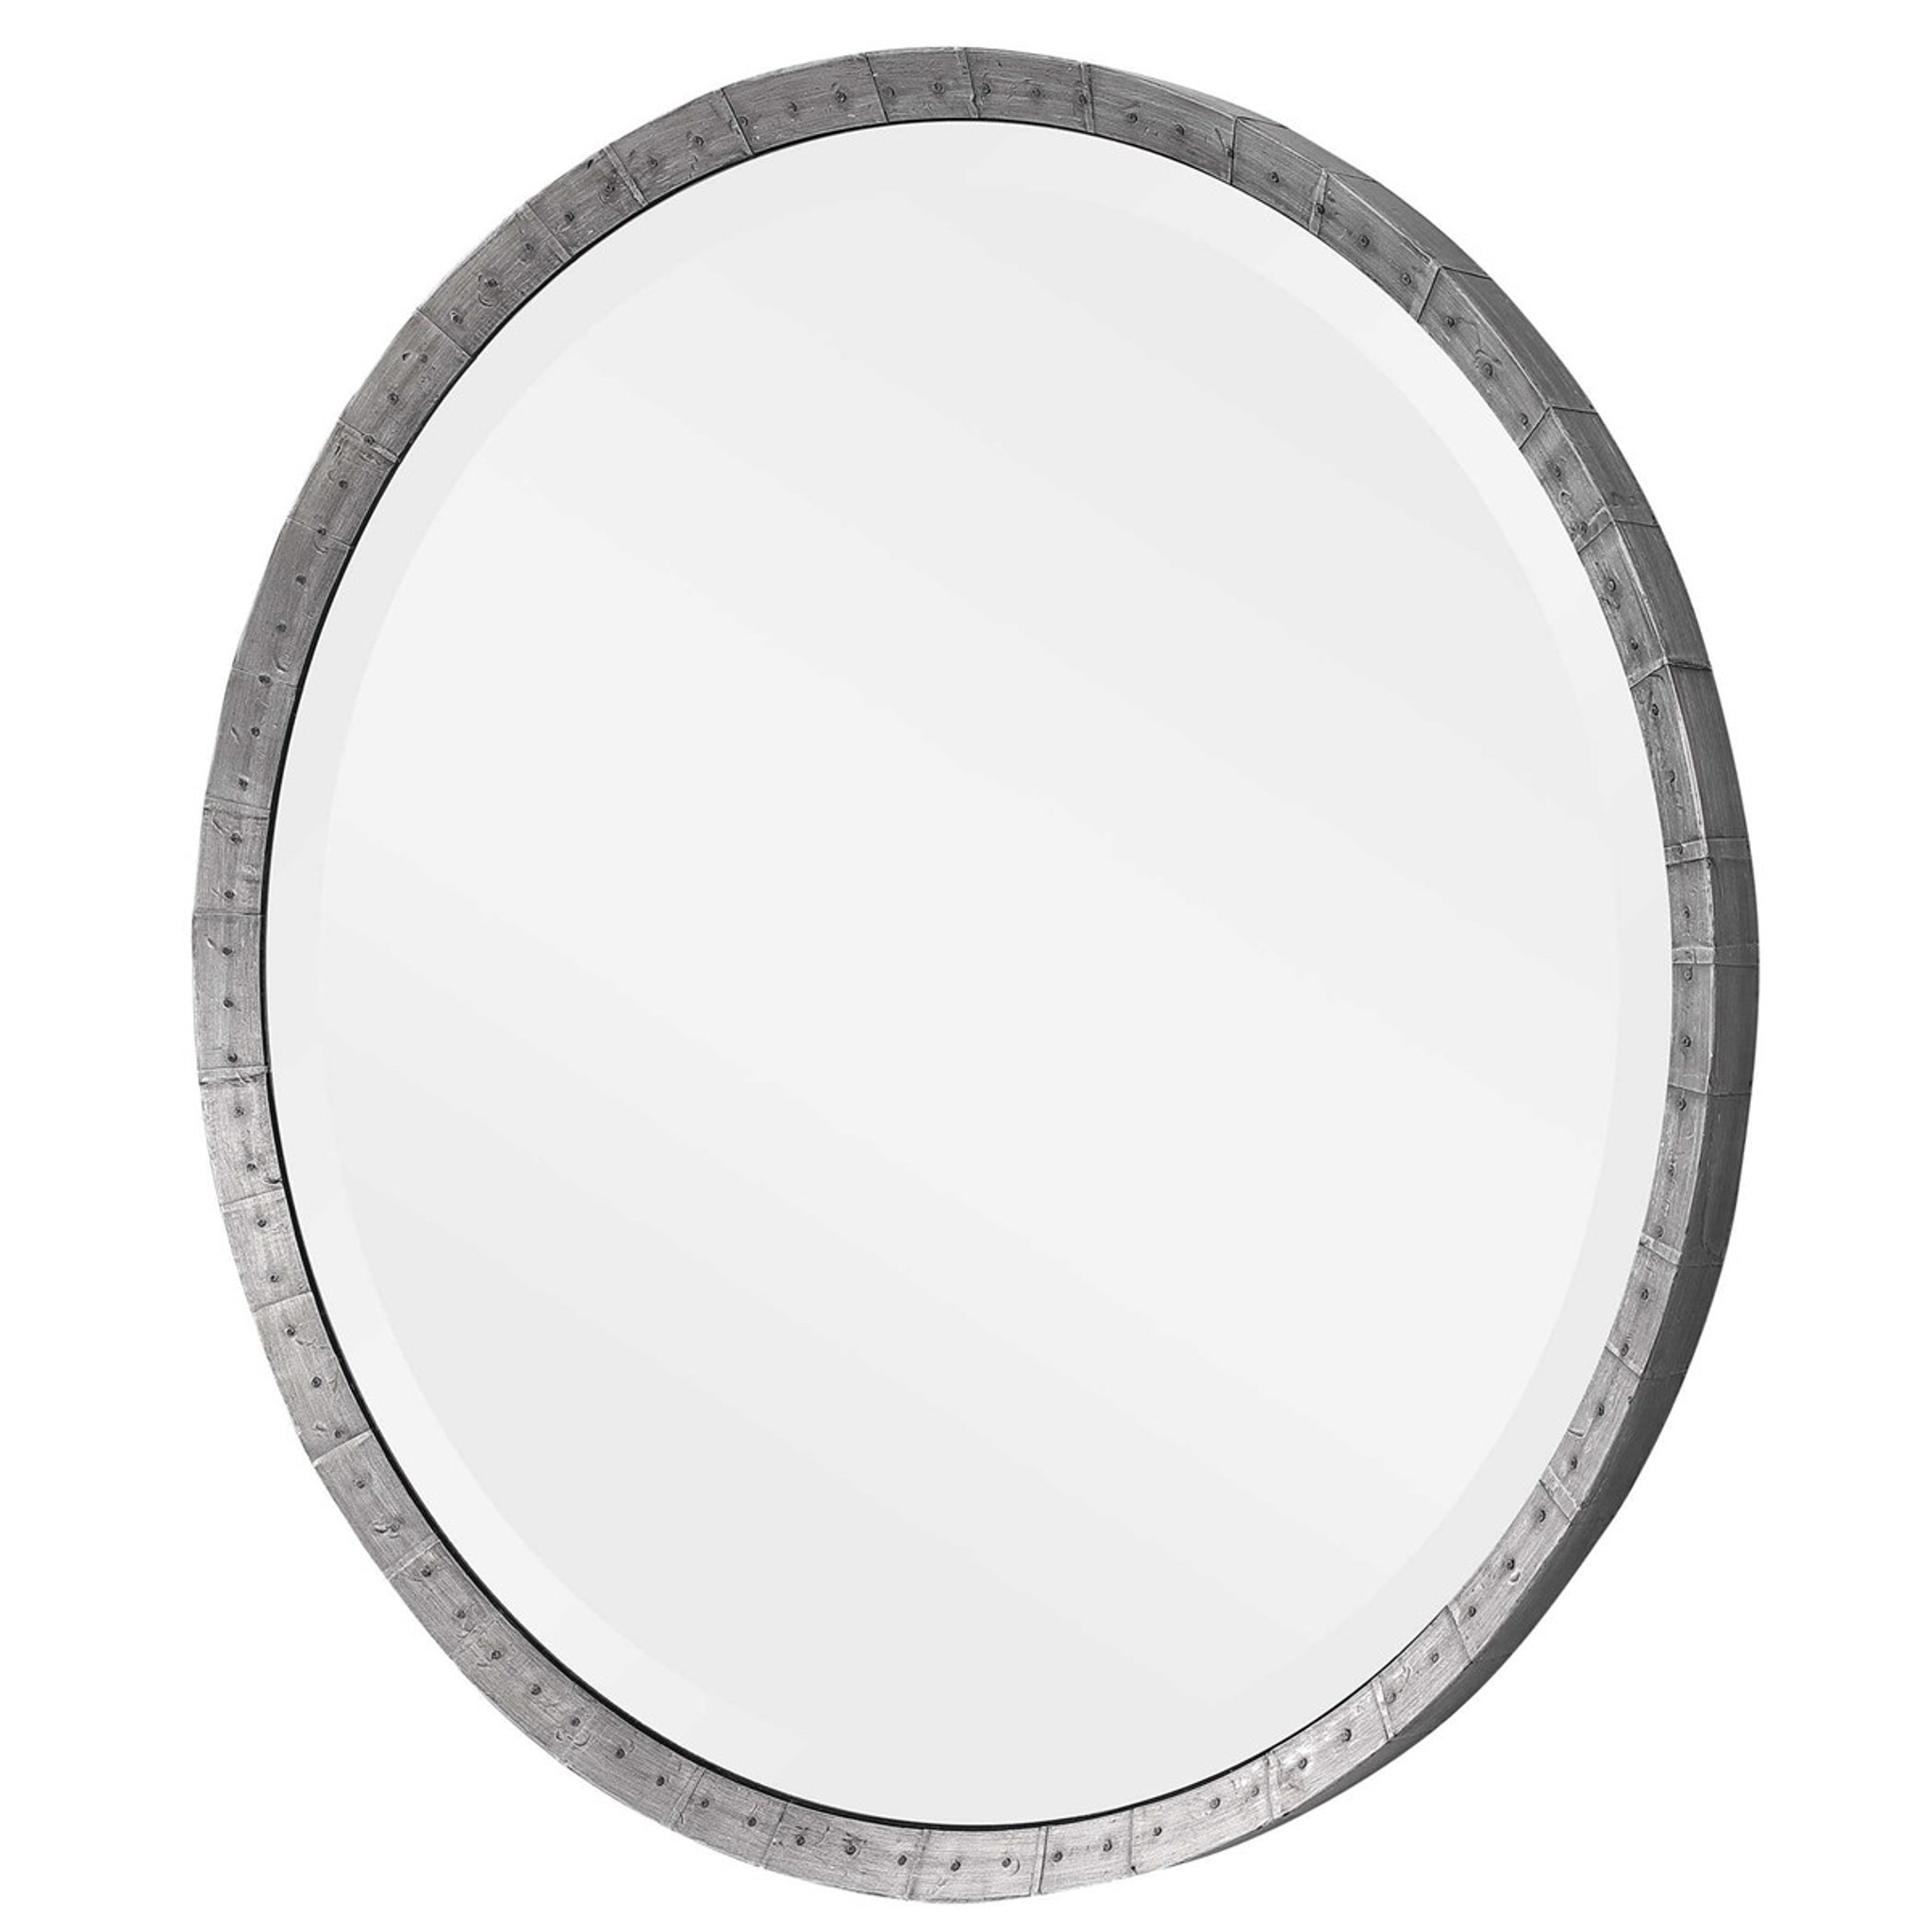 uttermost bartow steel grey industrial style rustic round wall mirror nailheads